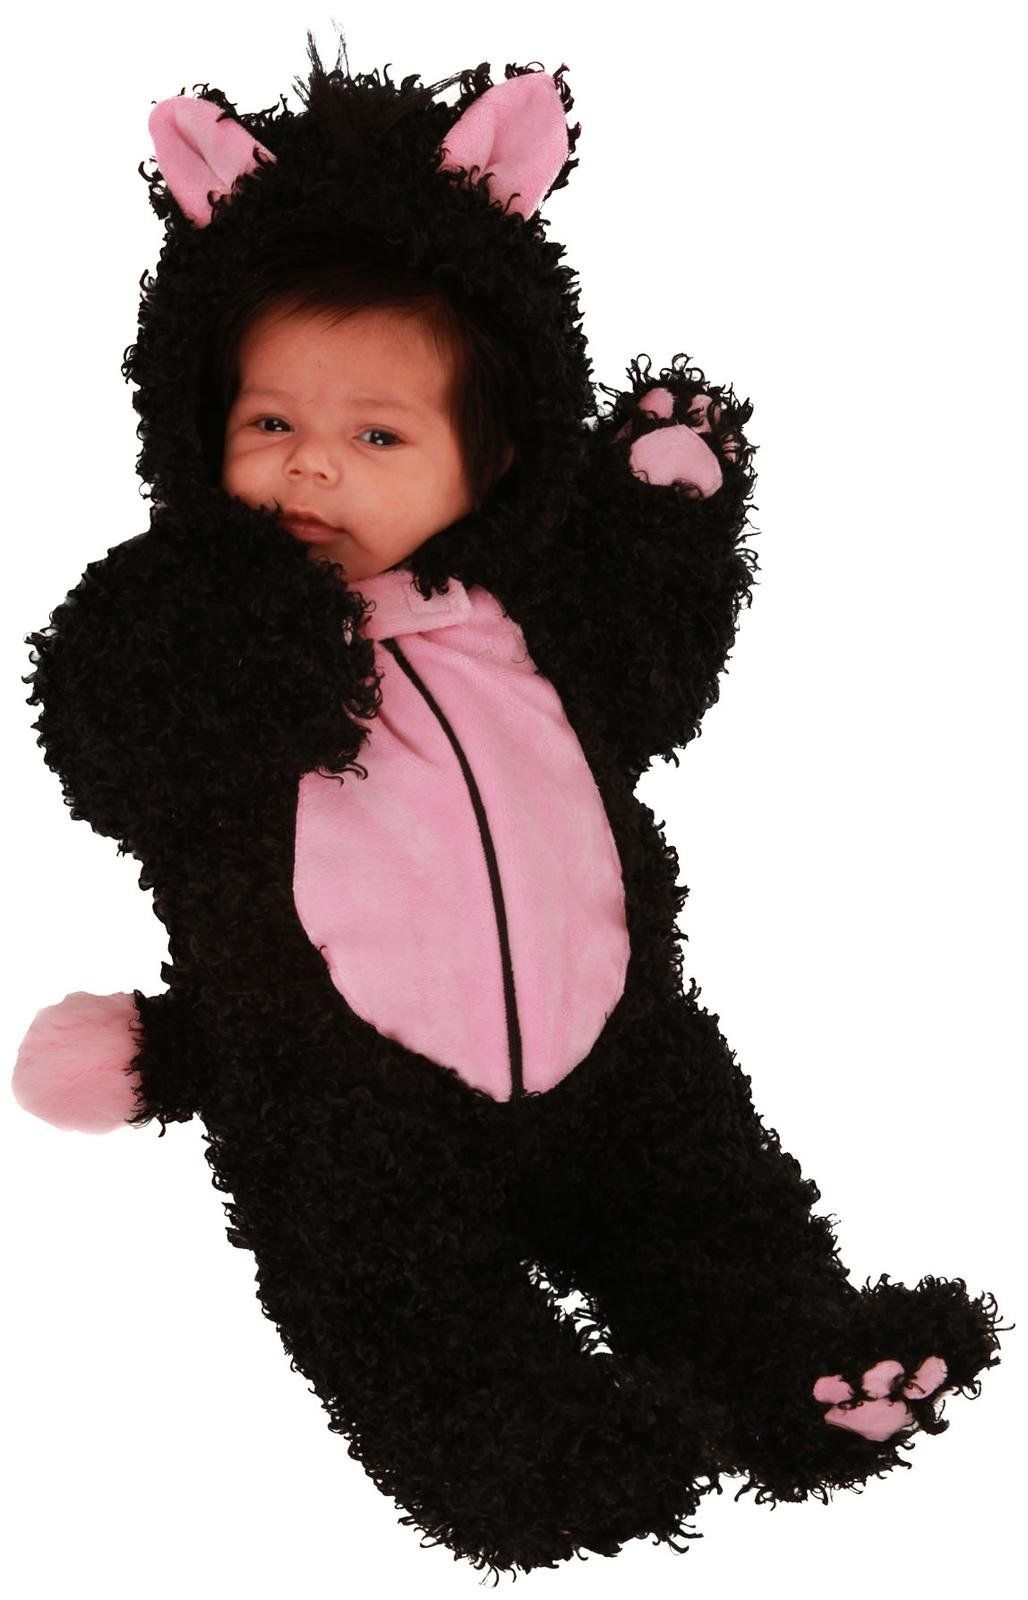 Fuzzy kitty costume with a cute pink belly for your